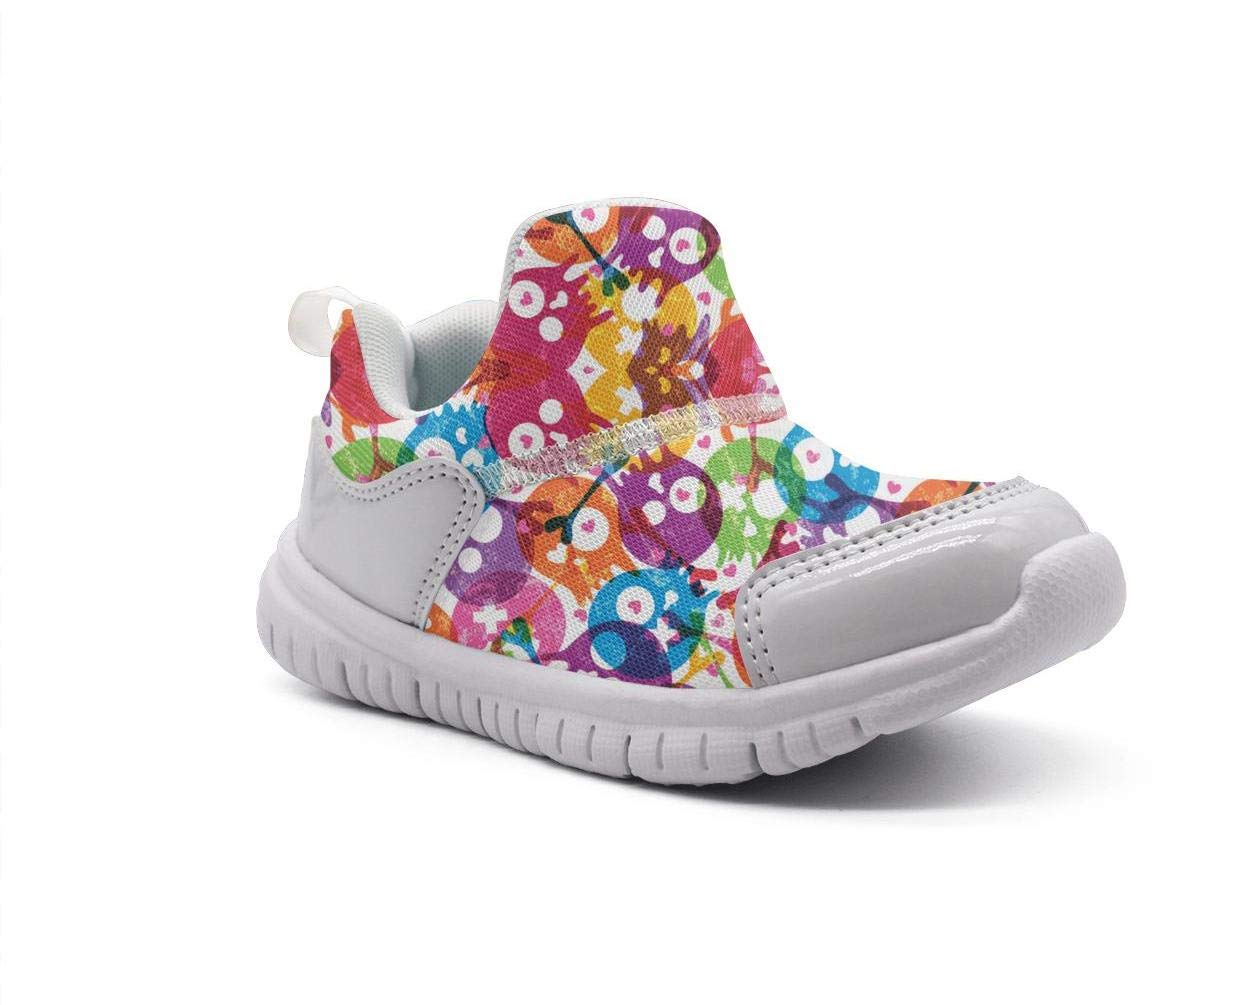 ONEYUAN Children Colorful Galaxy Skull Flowers Kid Casual Lightweight Sport Shoes Sneakers Walking Athletic Shoes